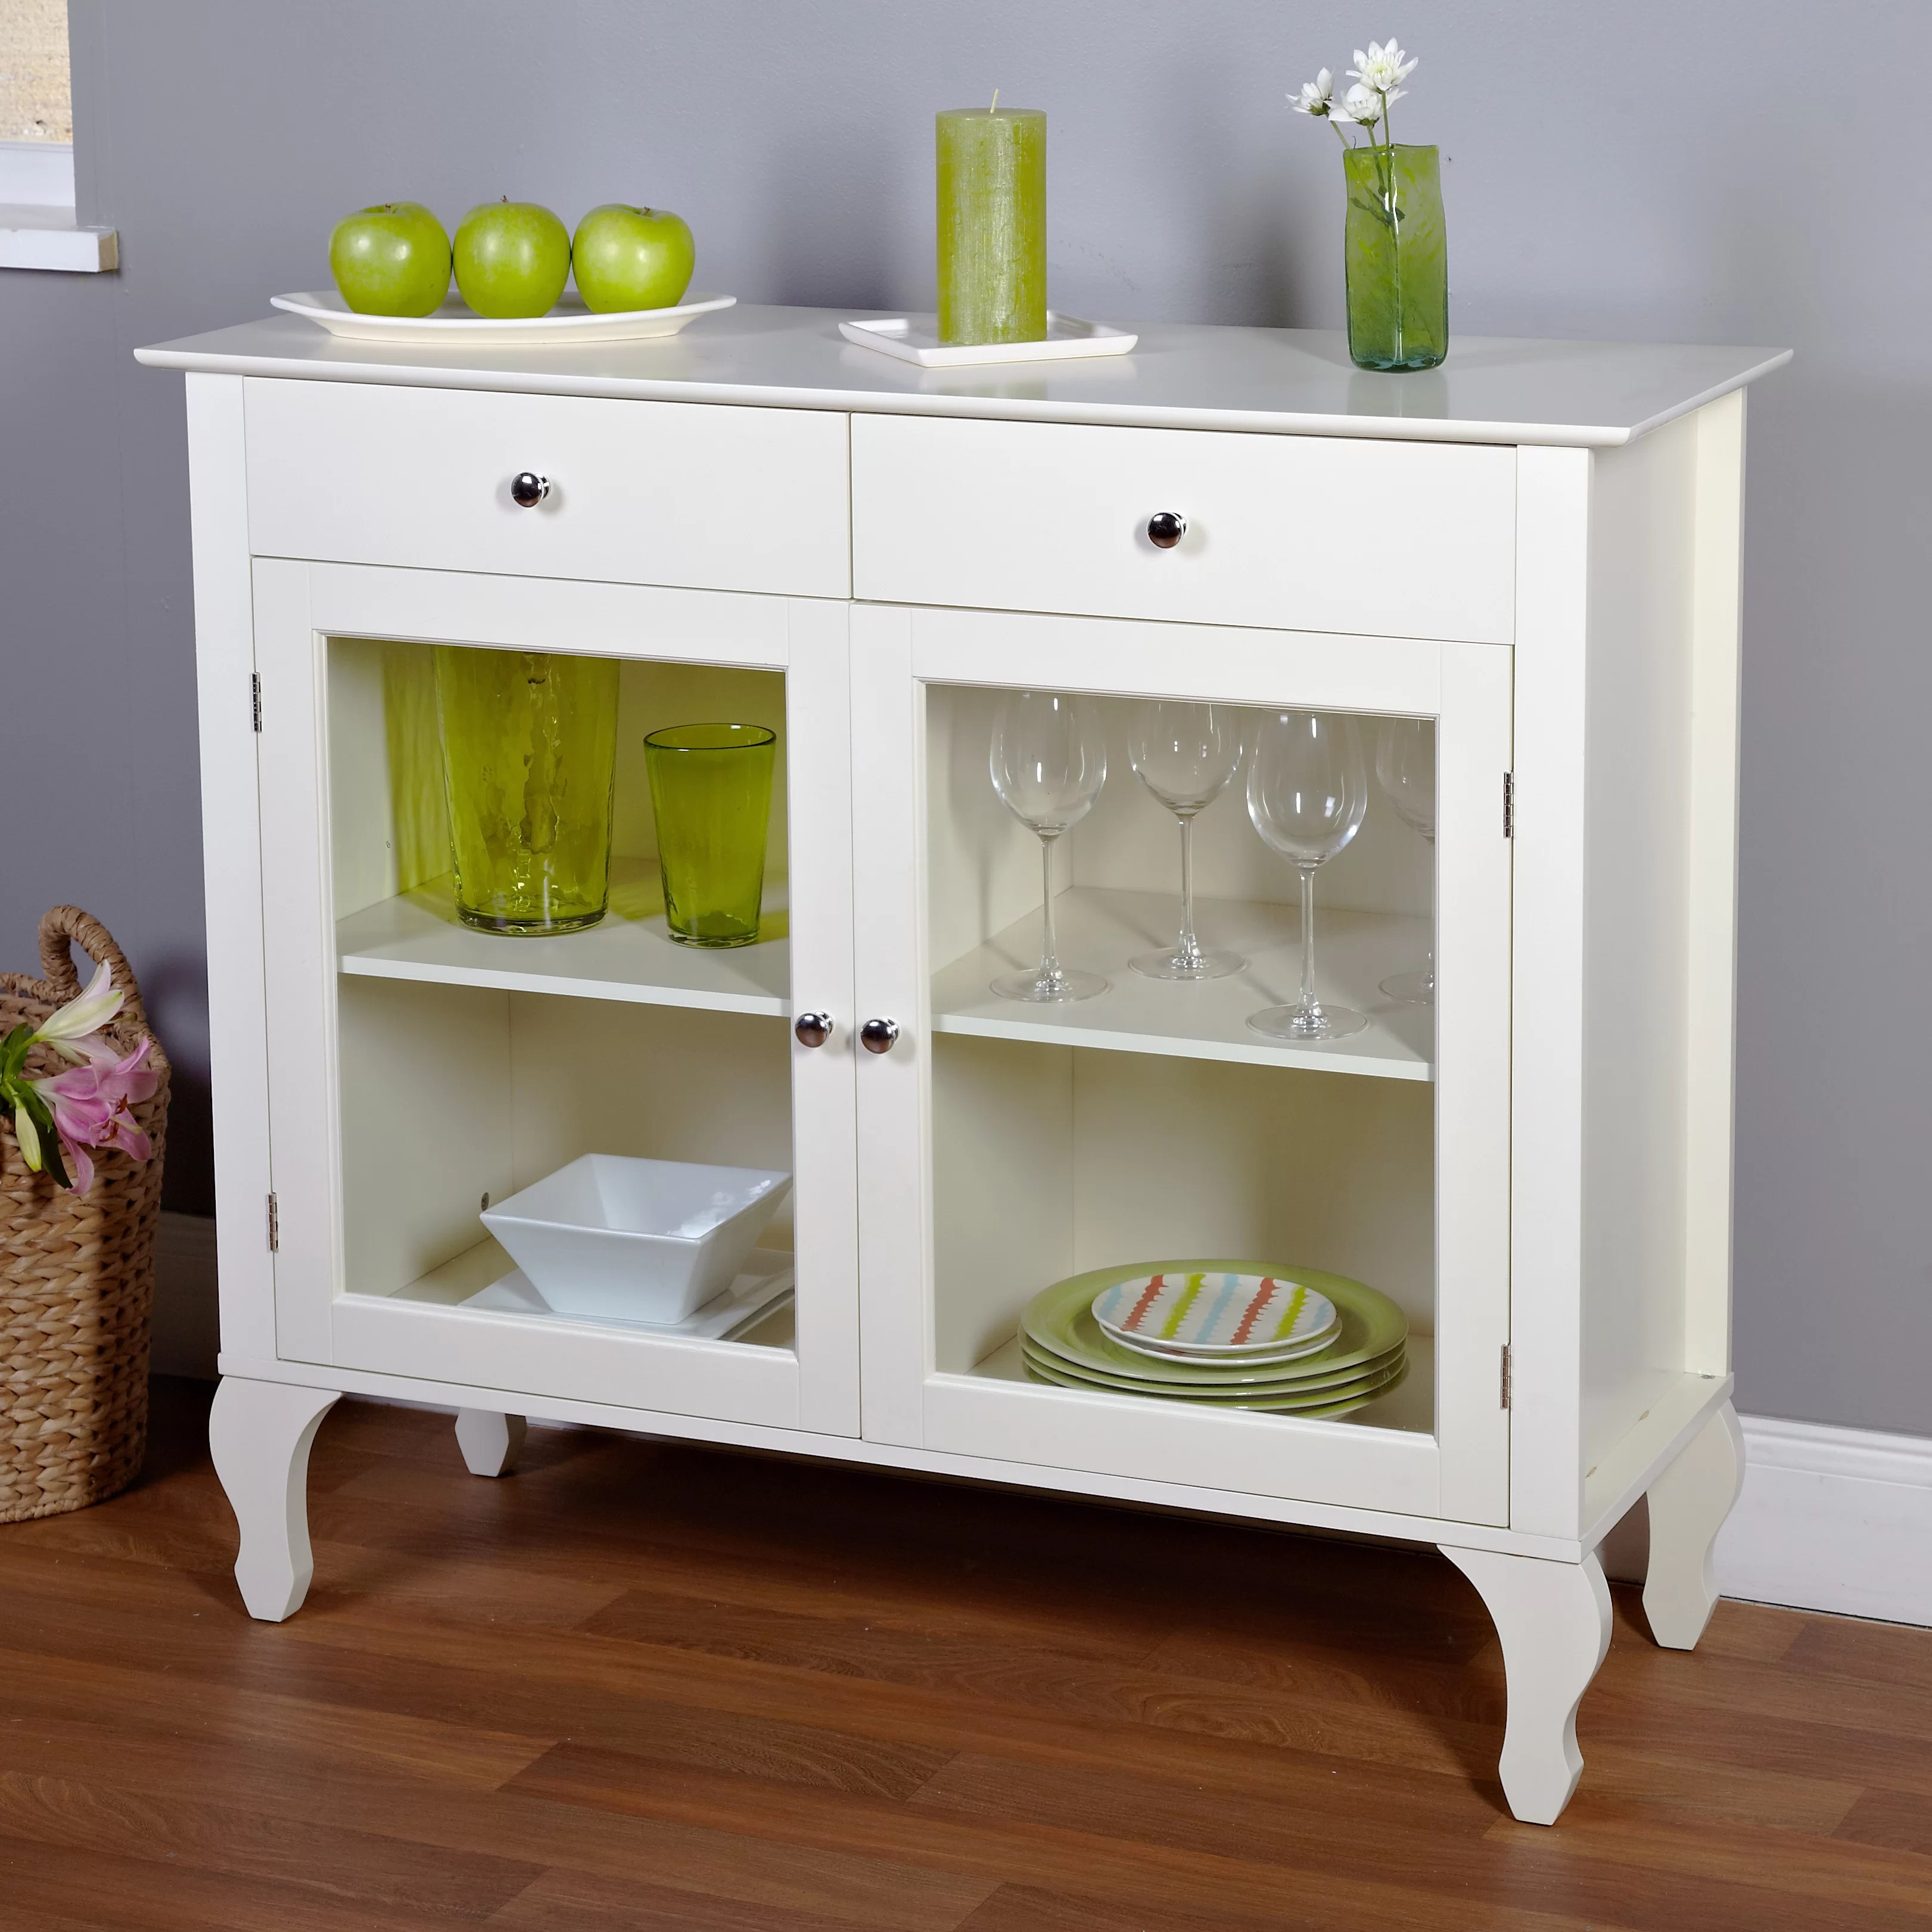 sideboards buffets c kitchen buffet cabinet QUICK VIEW